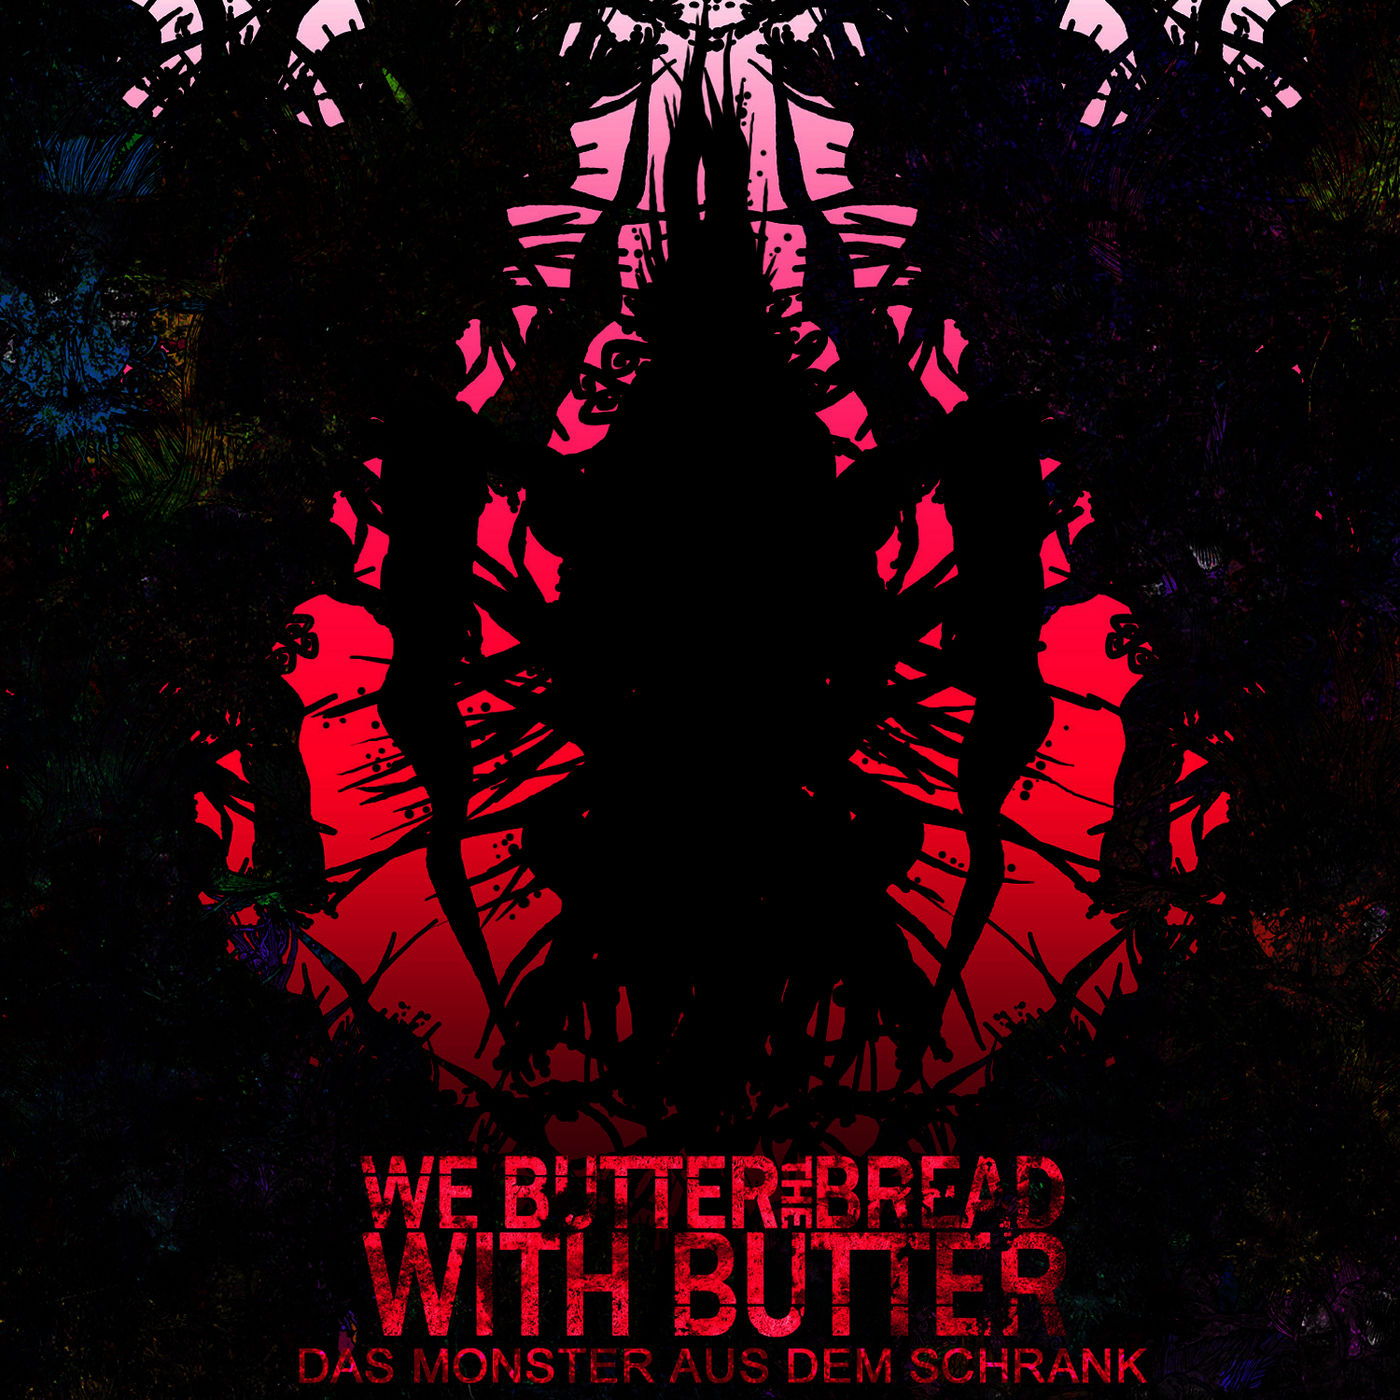 We Butter The Bread With Butter - Das Monster aus dem Schrank (2008)